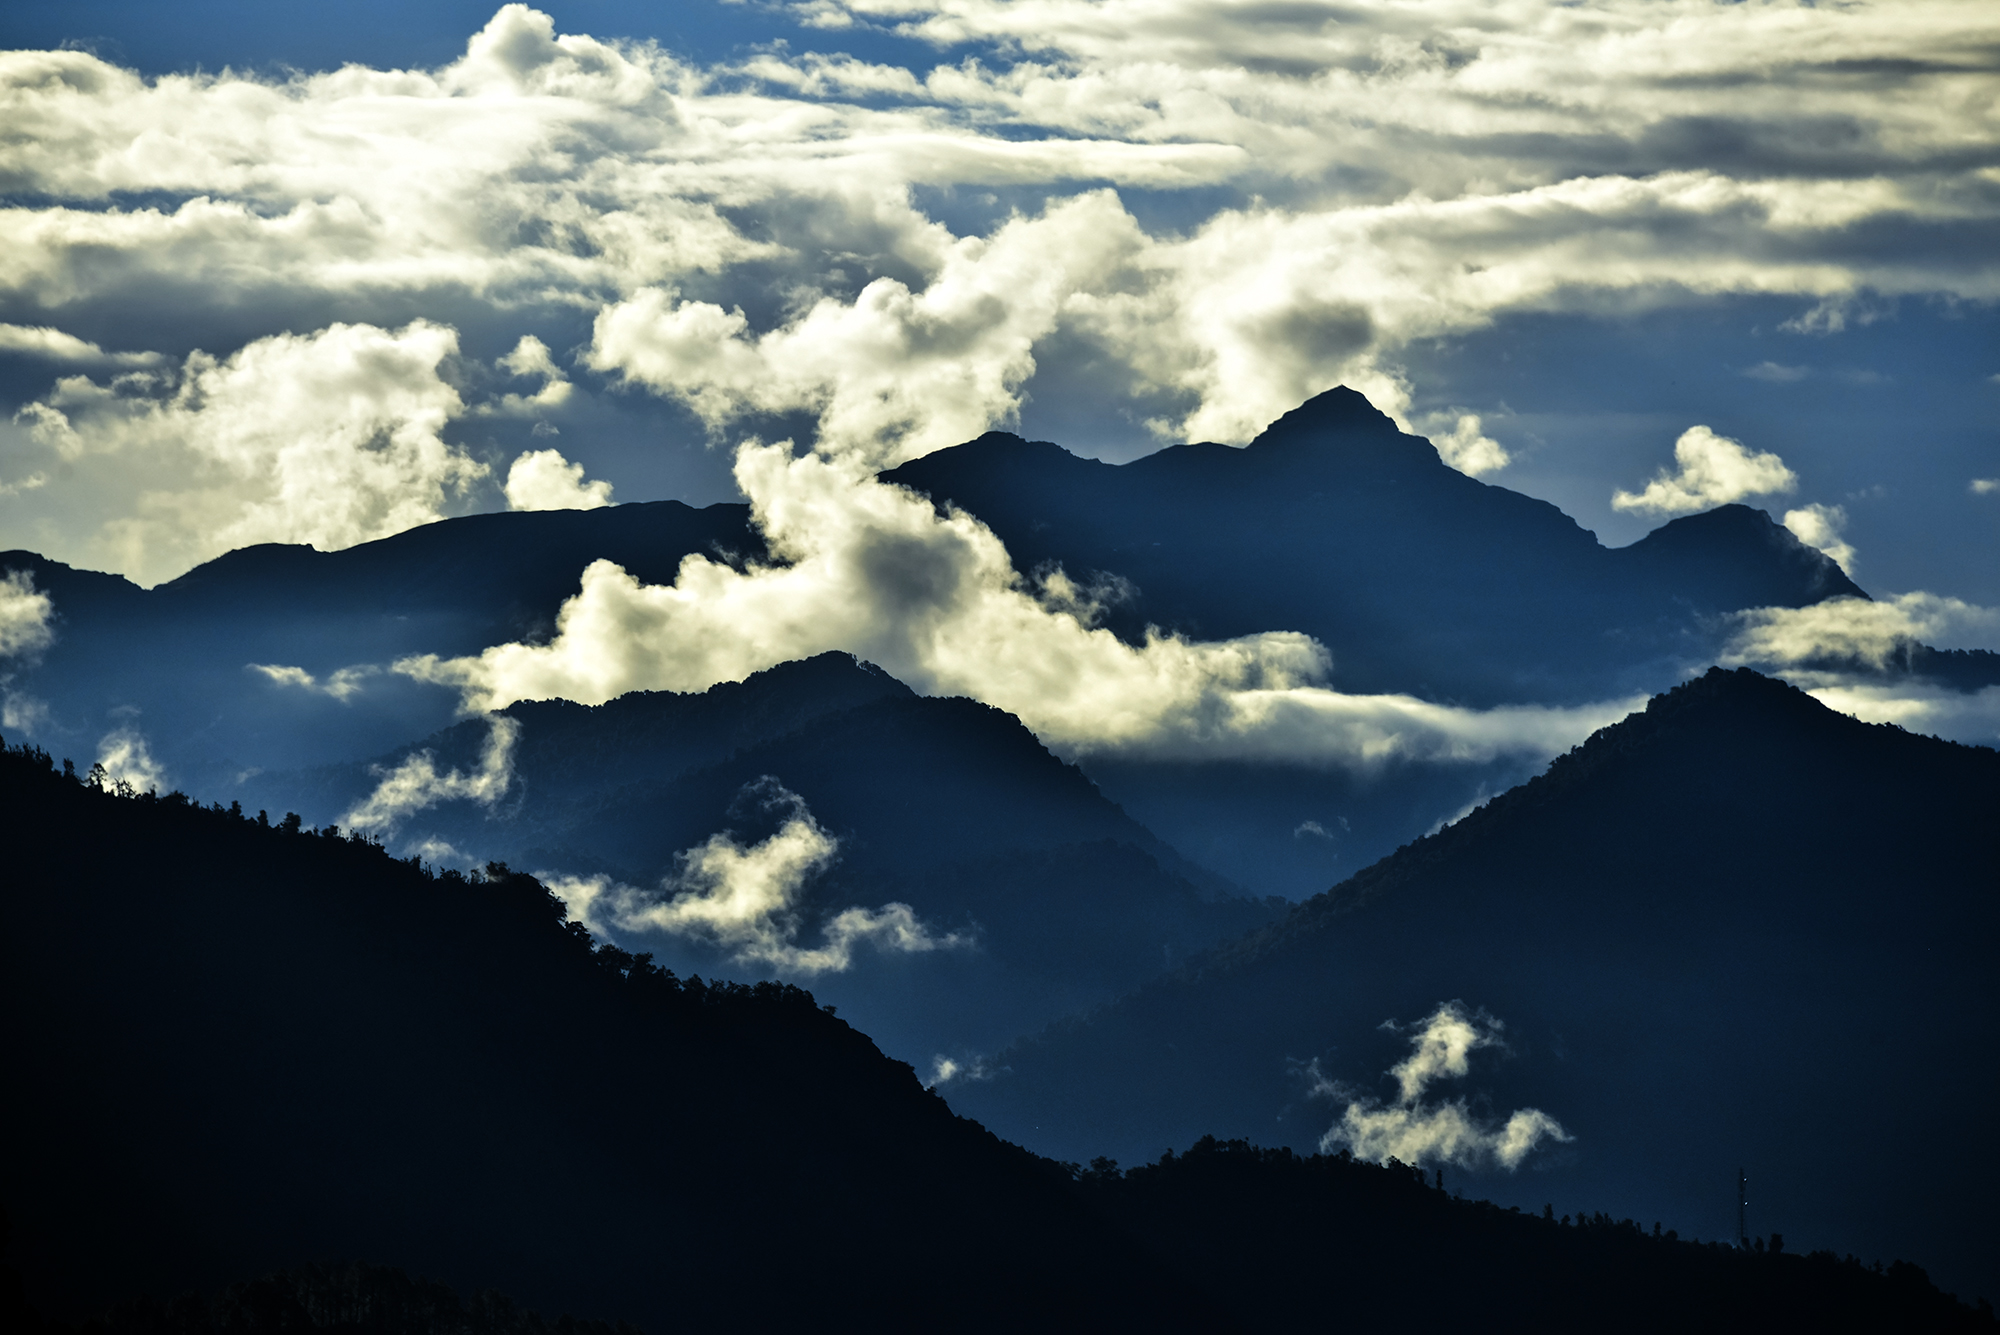 A heavenly bliss seen in beautiful state of Uttarakhand, India. The photograph was taken during early morning when the sun was just about to rise...